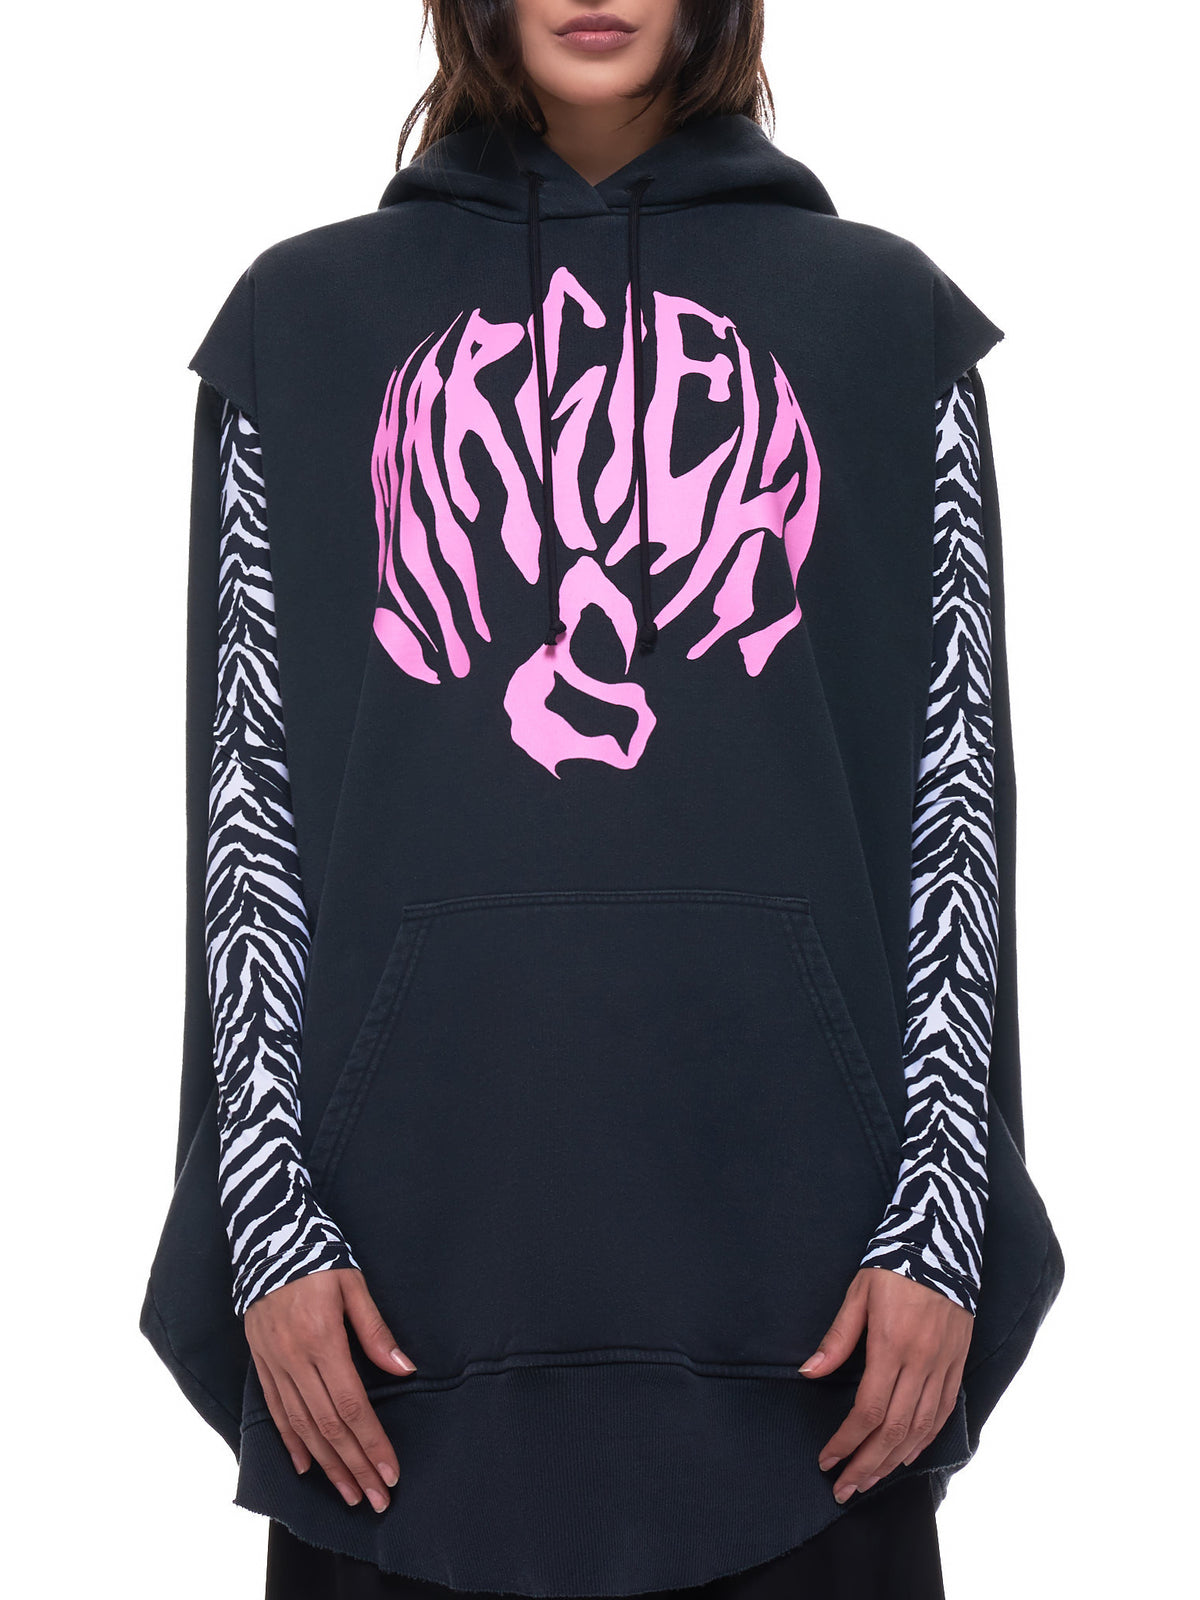 MM6 Maison Margiela Hoodie | H.Lorenzo - front